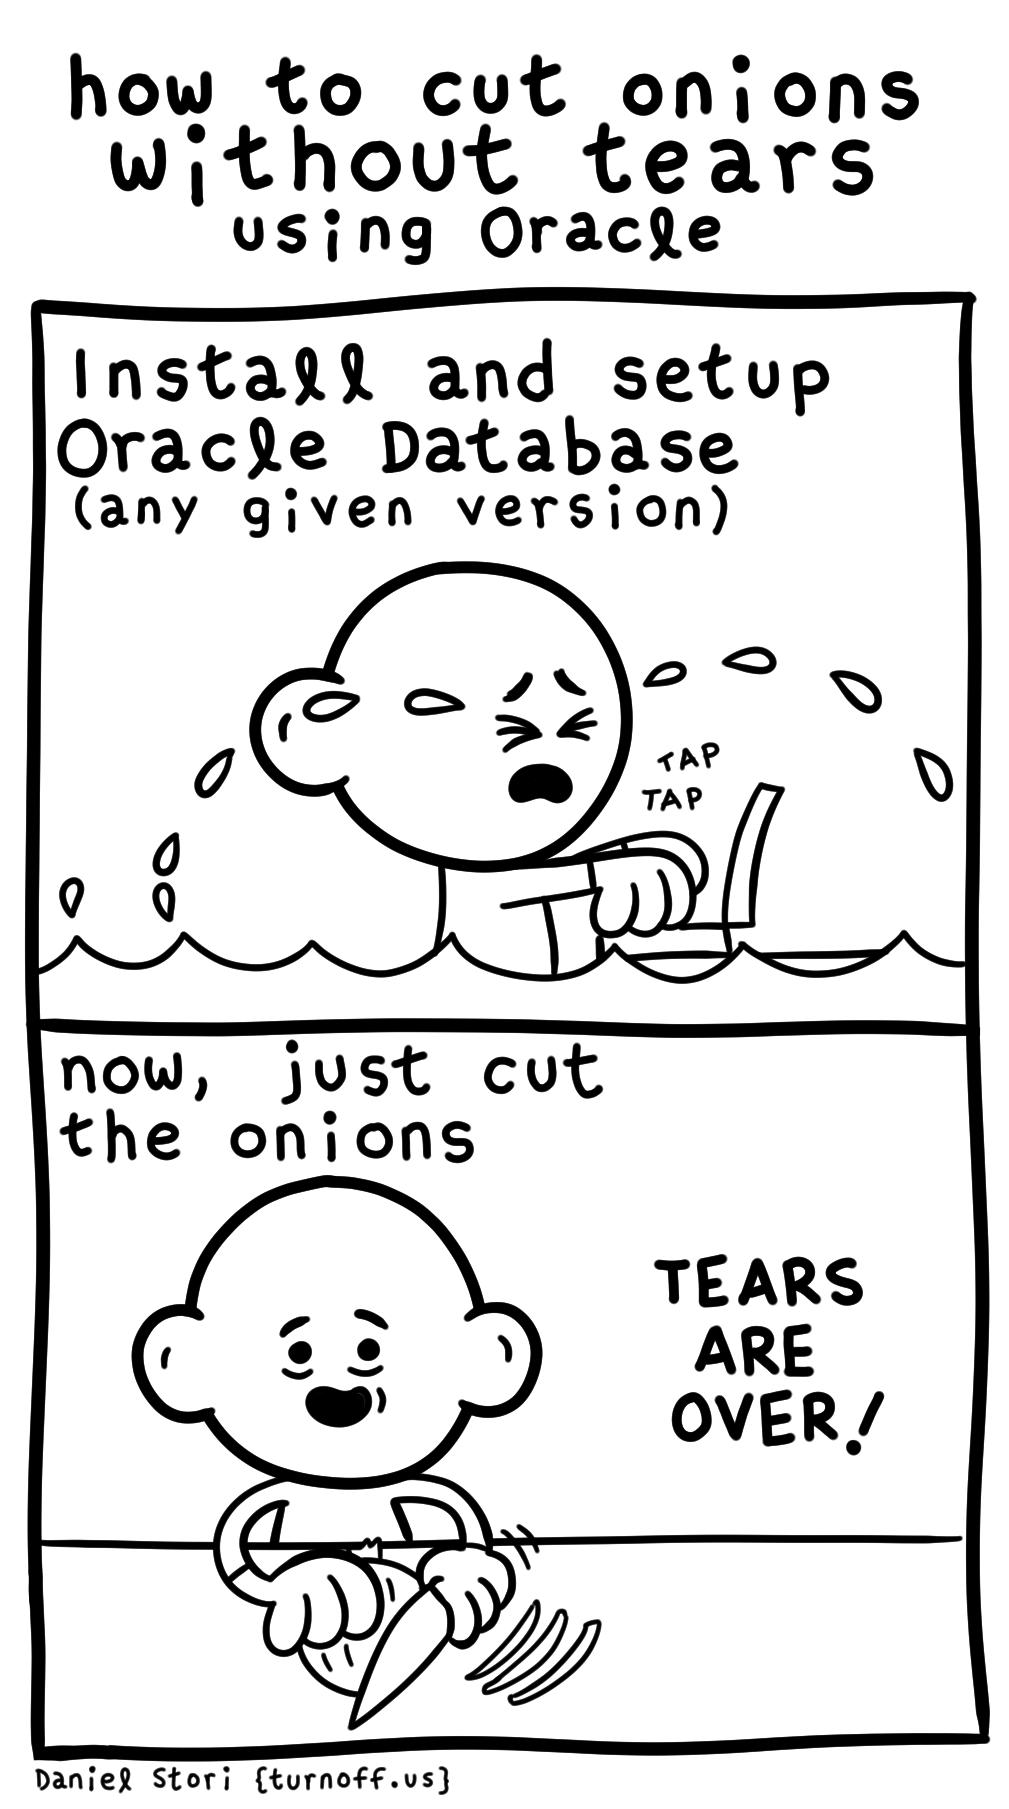 How to Cut Onions Without Tears (Using Oracle) [Comic